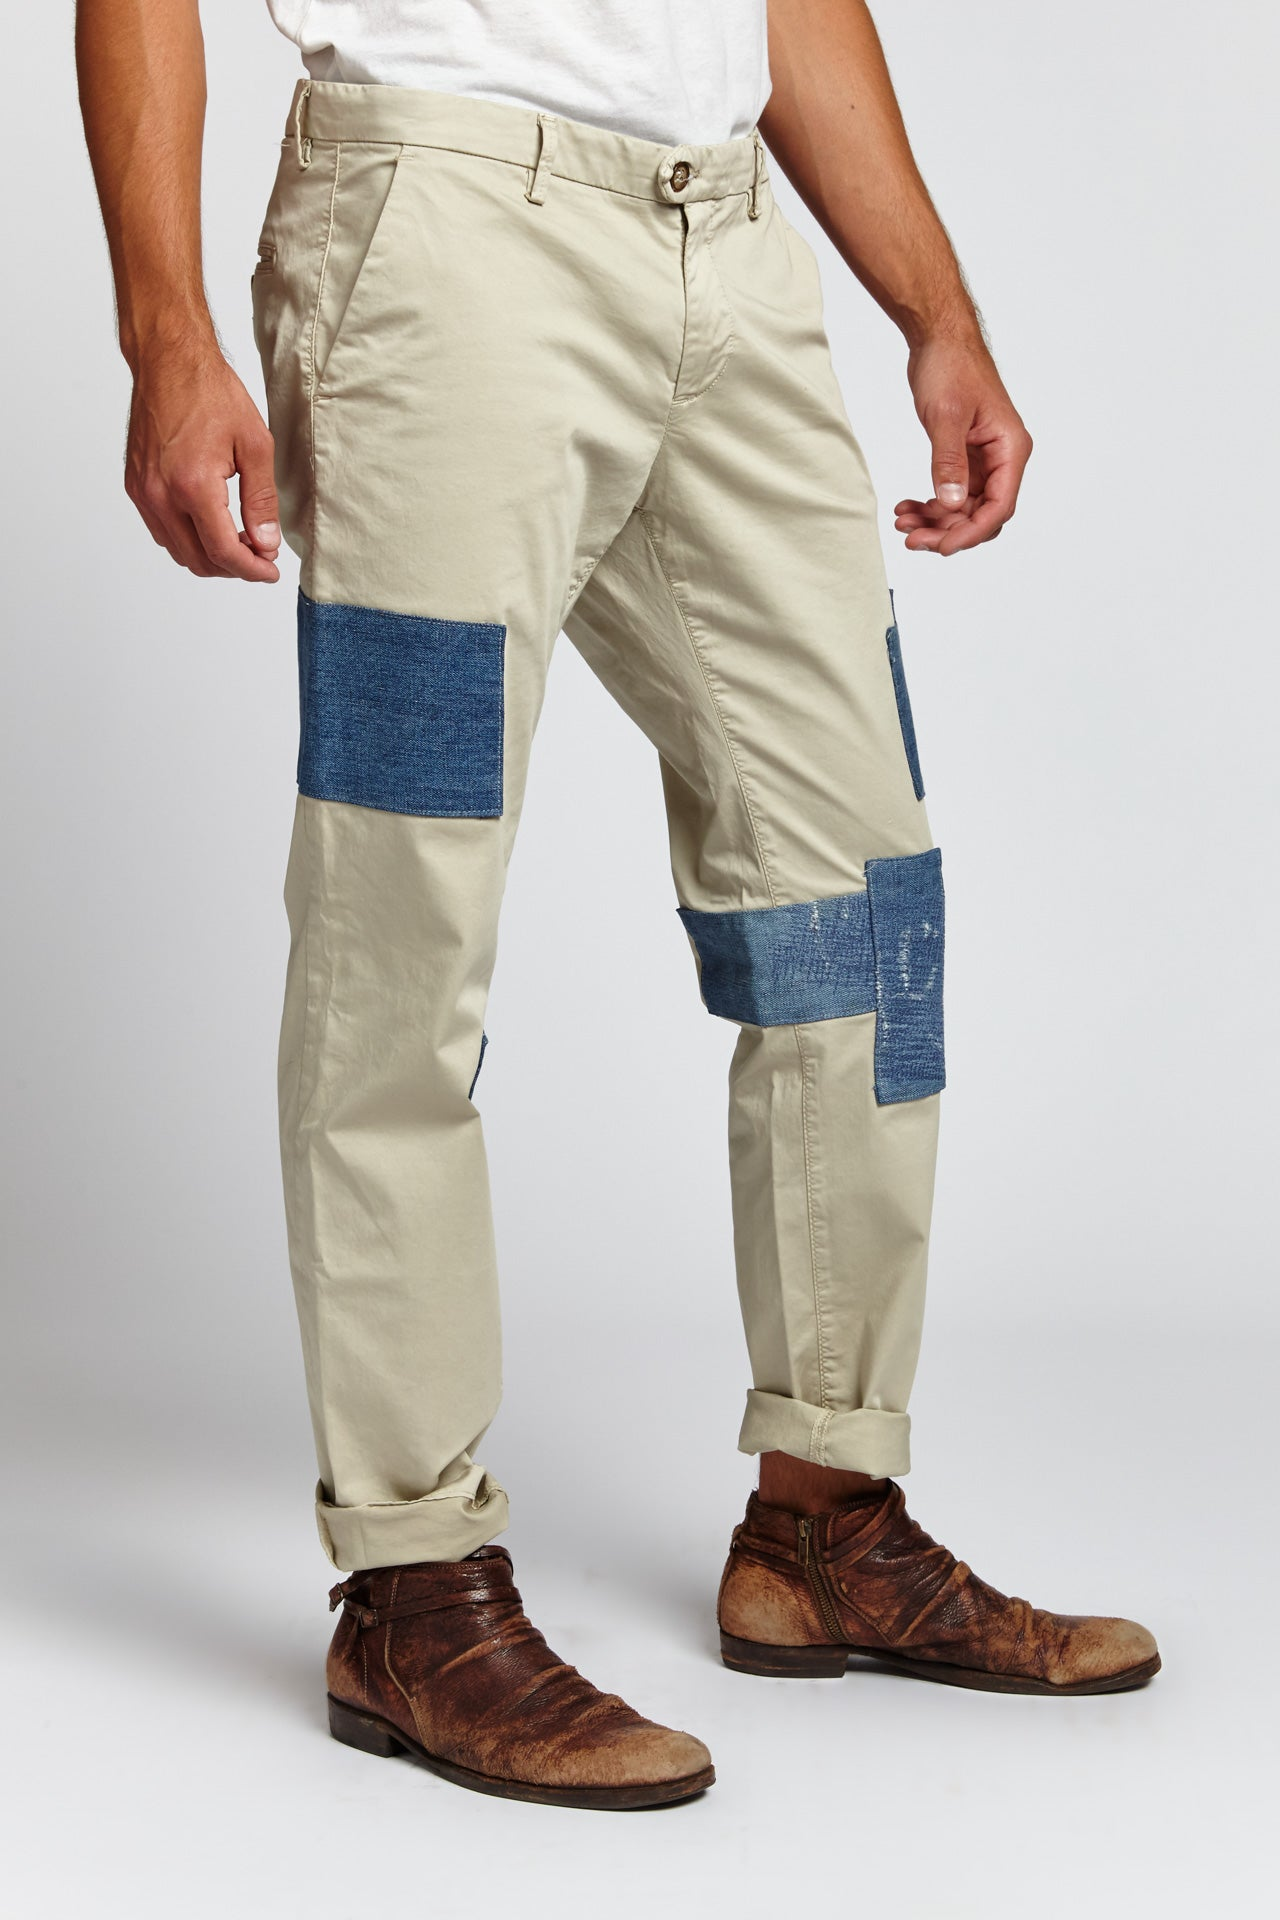 KHAKI PATCHWORK CARGO CHINOS 34 W (Made to Order)-BOTTOMS-Mundane Official-36-BROWN-Mundane Official